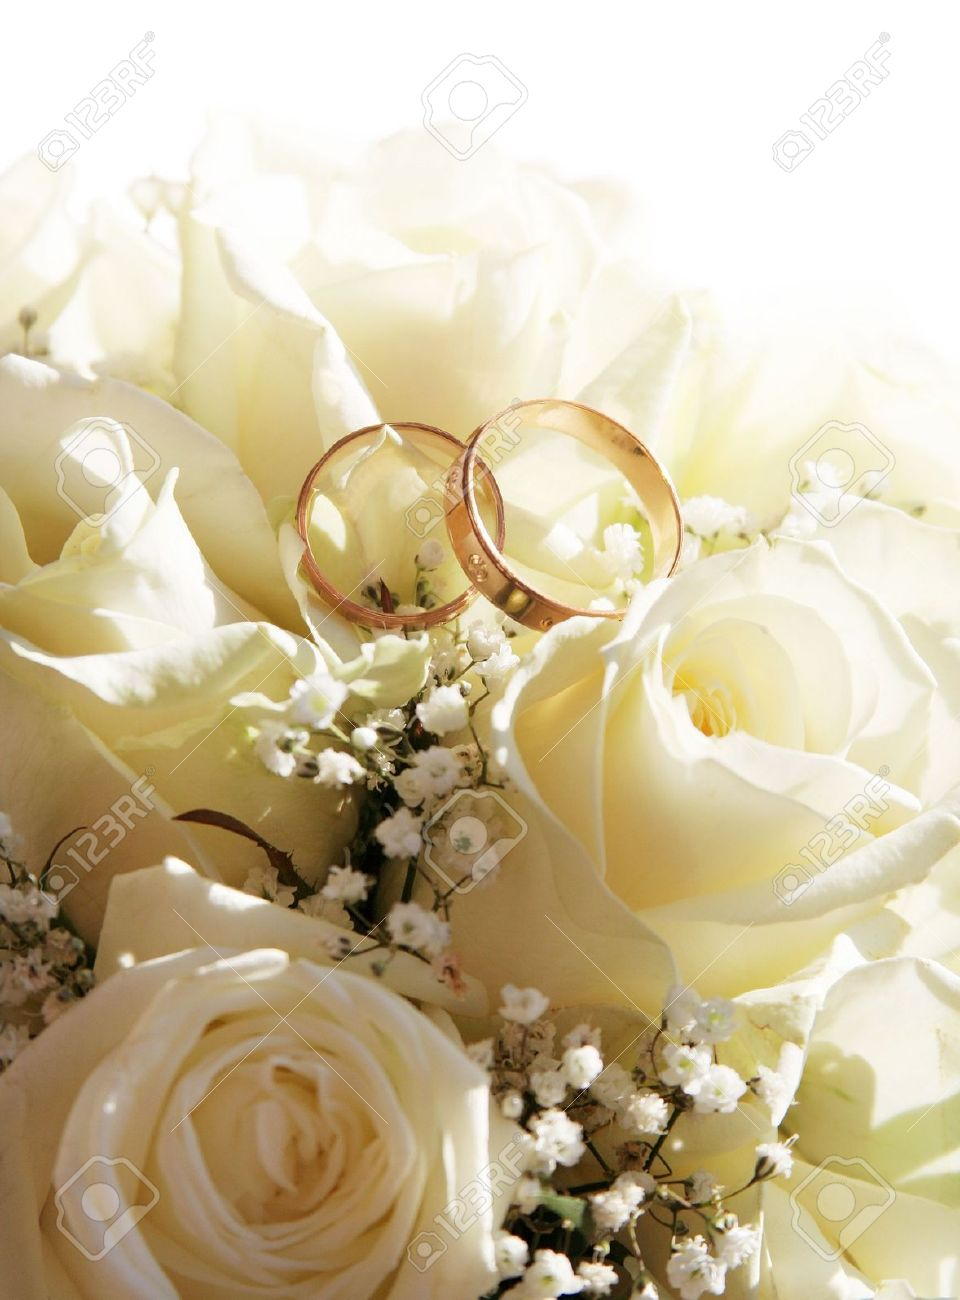 Wedding Rings And Roses Can Use As Background Stock Photo